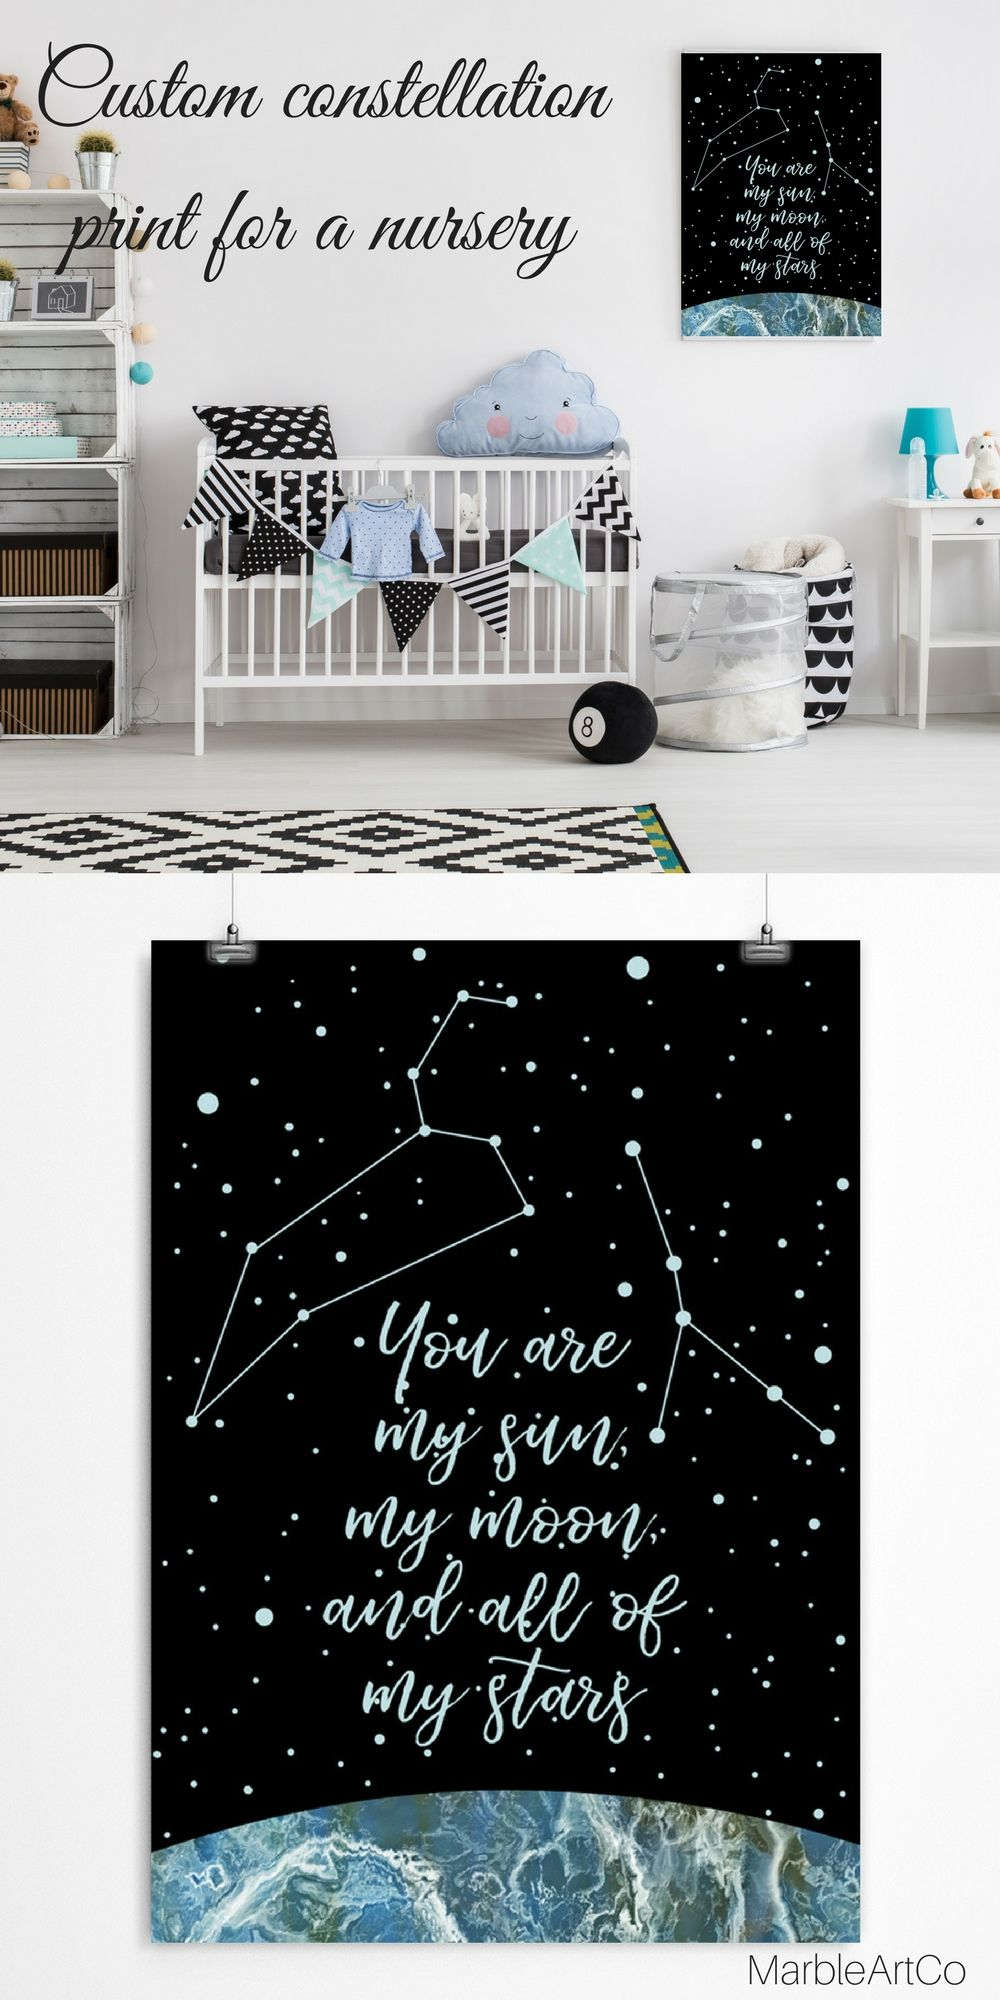 Personalized Custom Constellations Poster, 8th Anniversary Gift ...